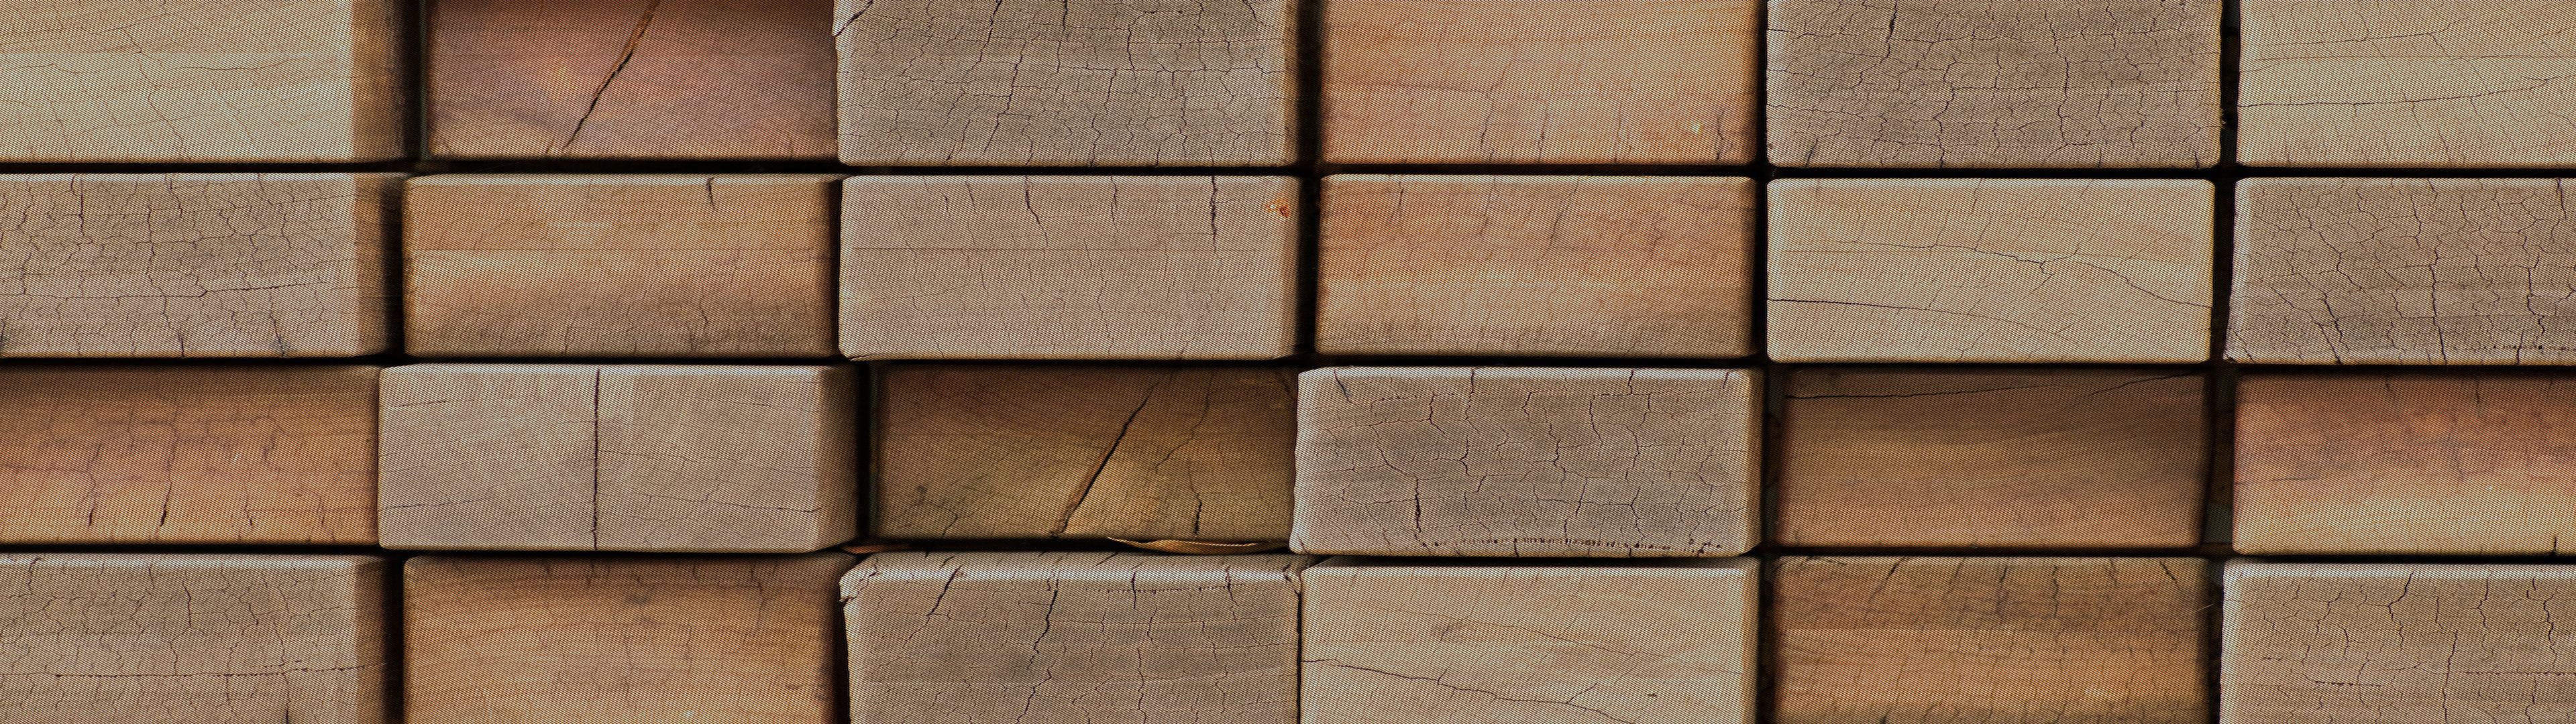 High resolution Wood dual monitor 1080p wallpaper ID:345961 for desktop